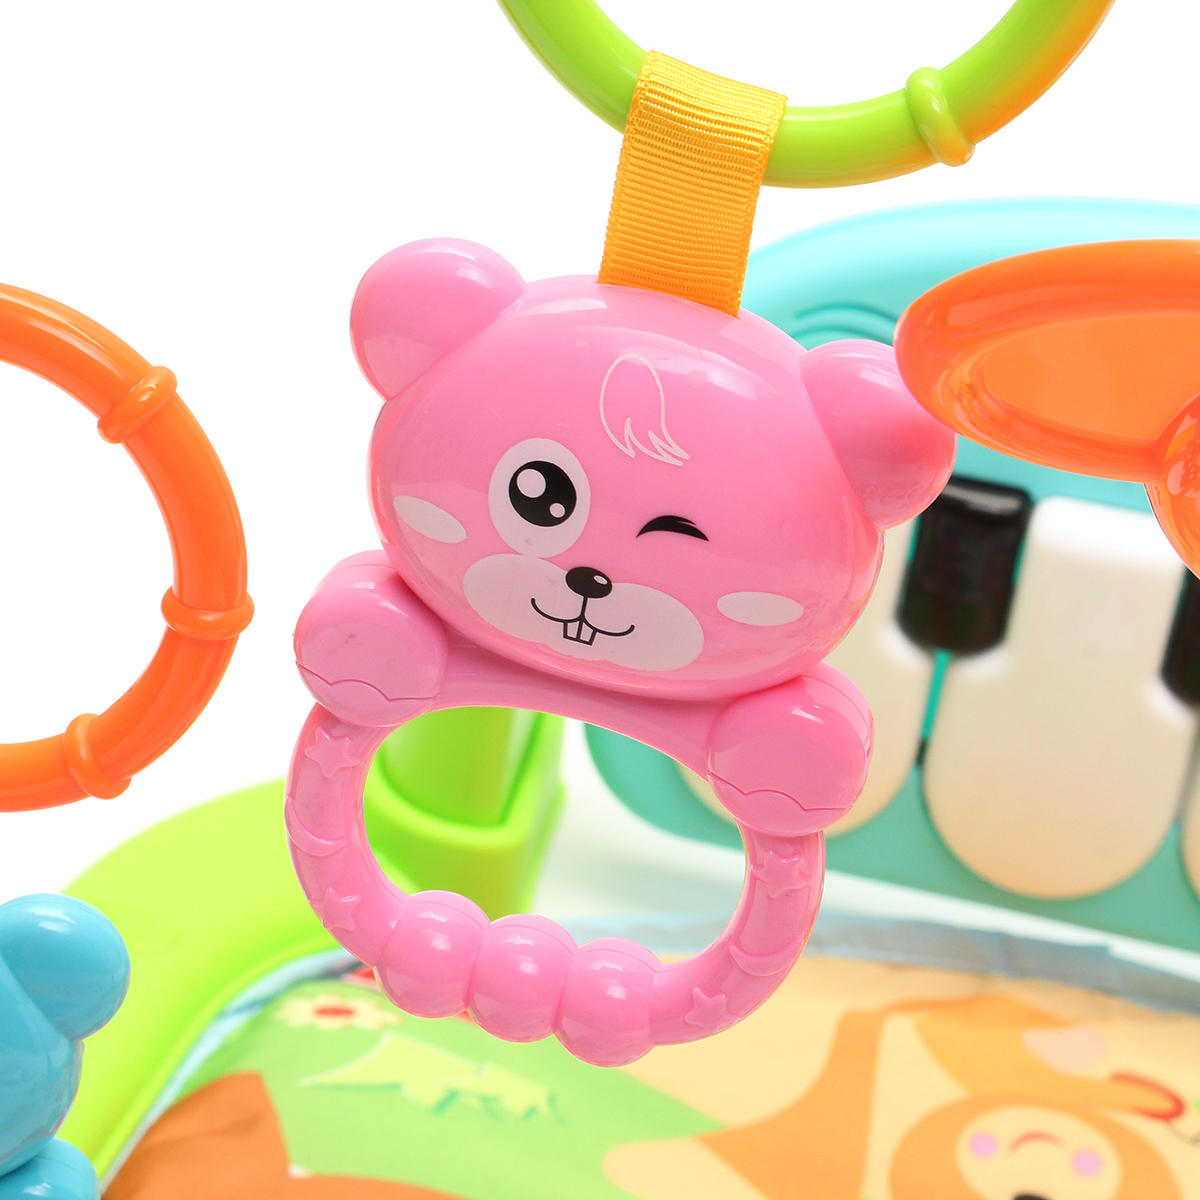 Foot Play Piano Musical Lullaby Baby Activity Playmat Gym Toy Soft Baby Play Mat - 12